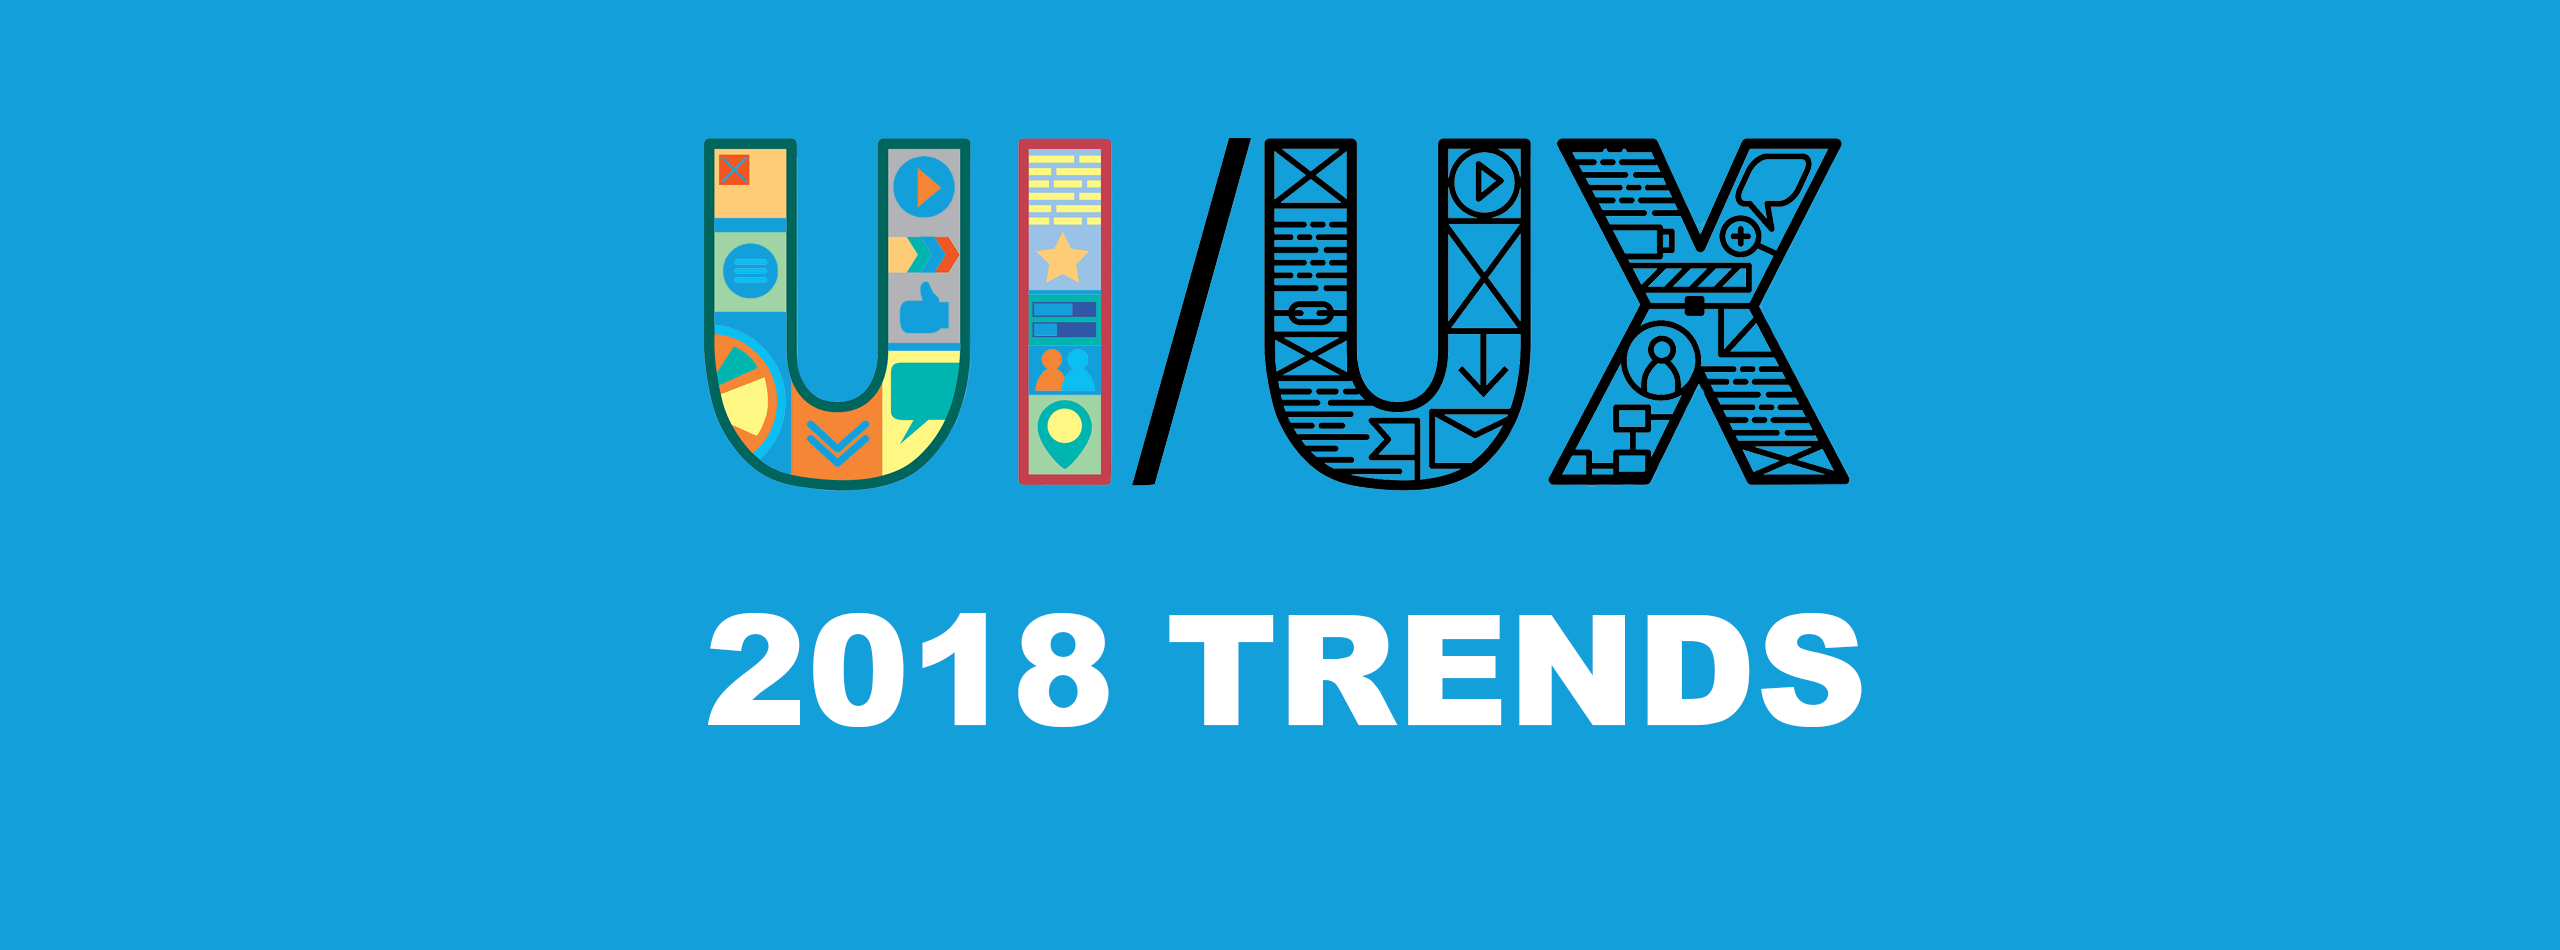 UI/UX Trends to Expect in 2018